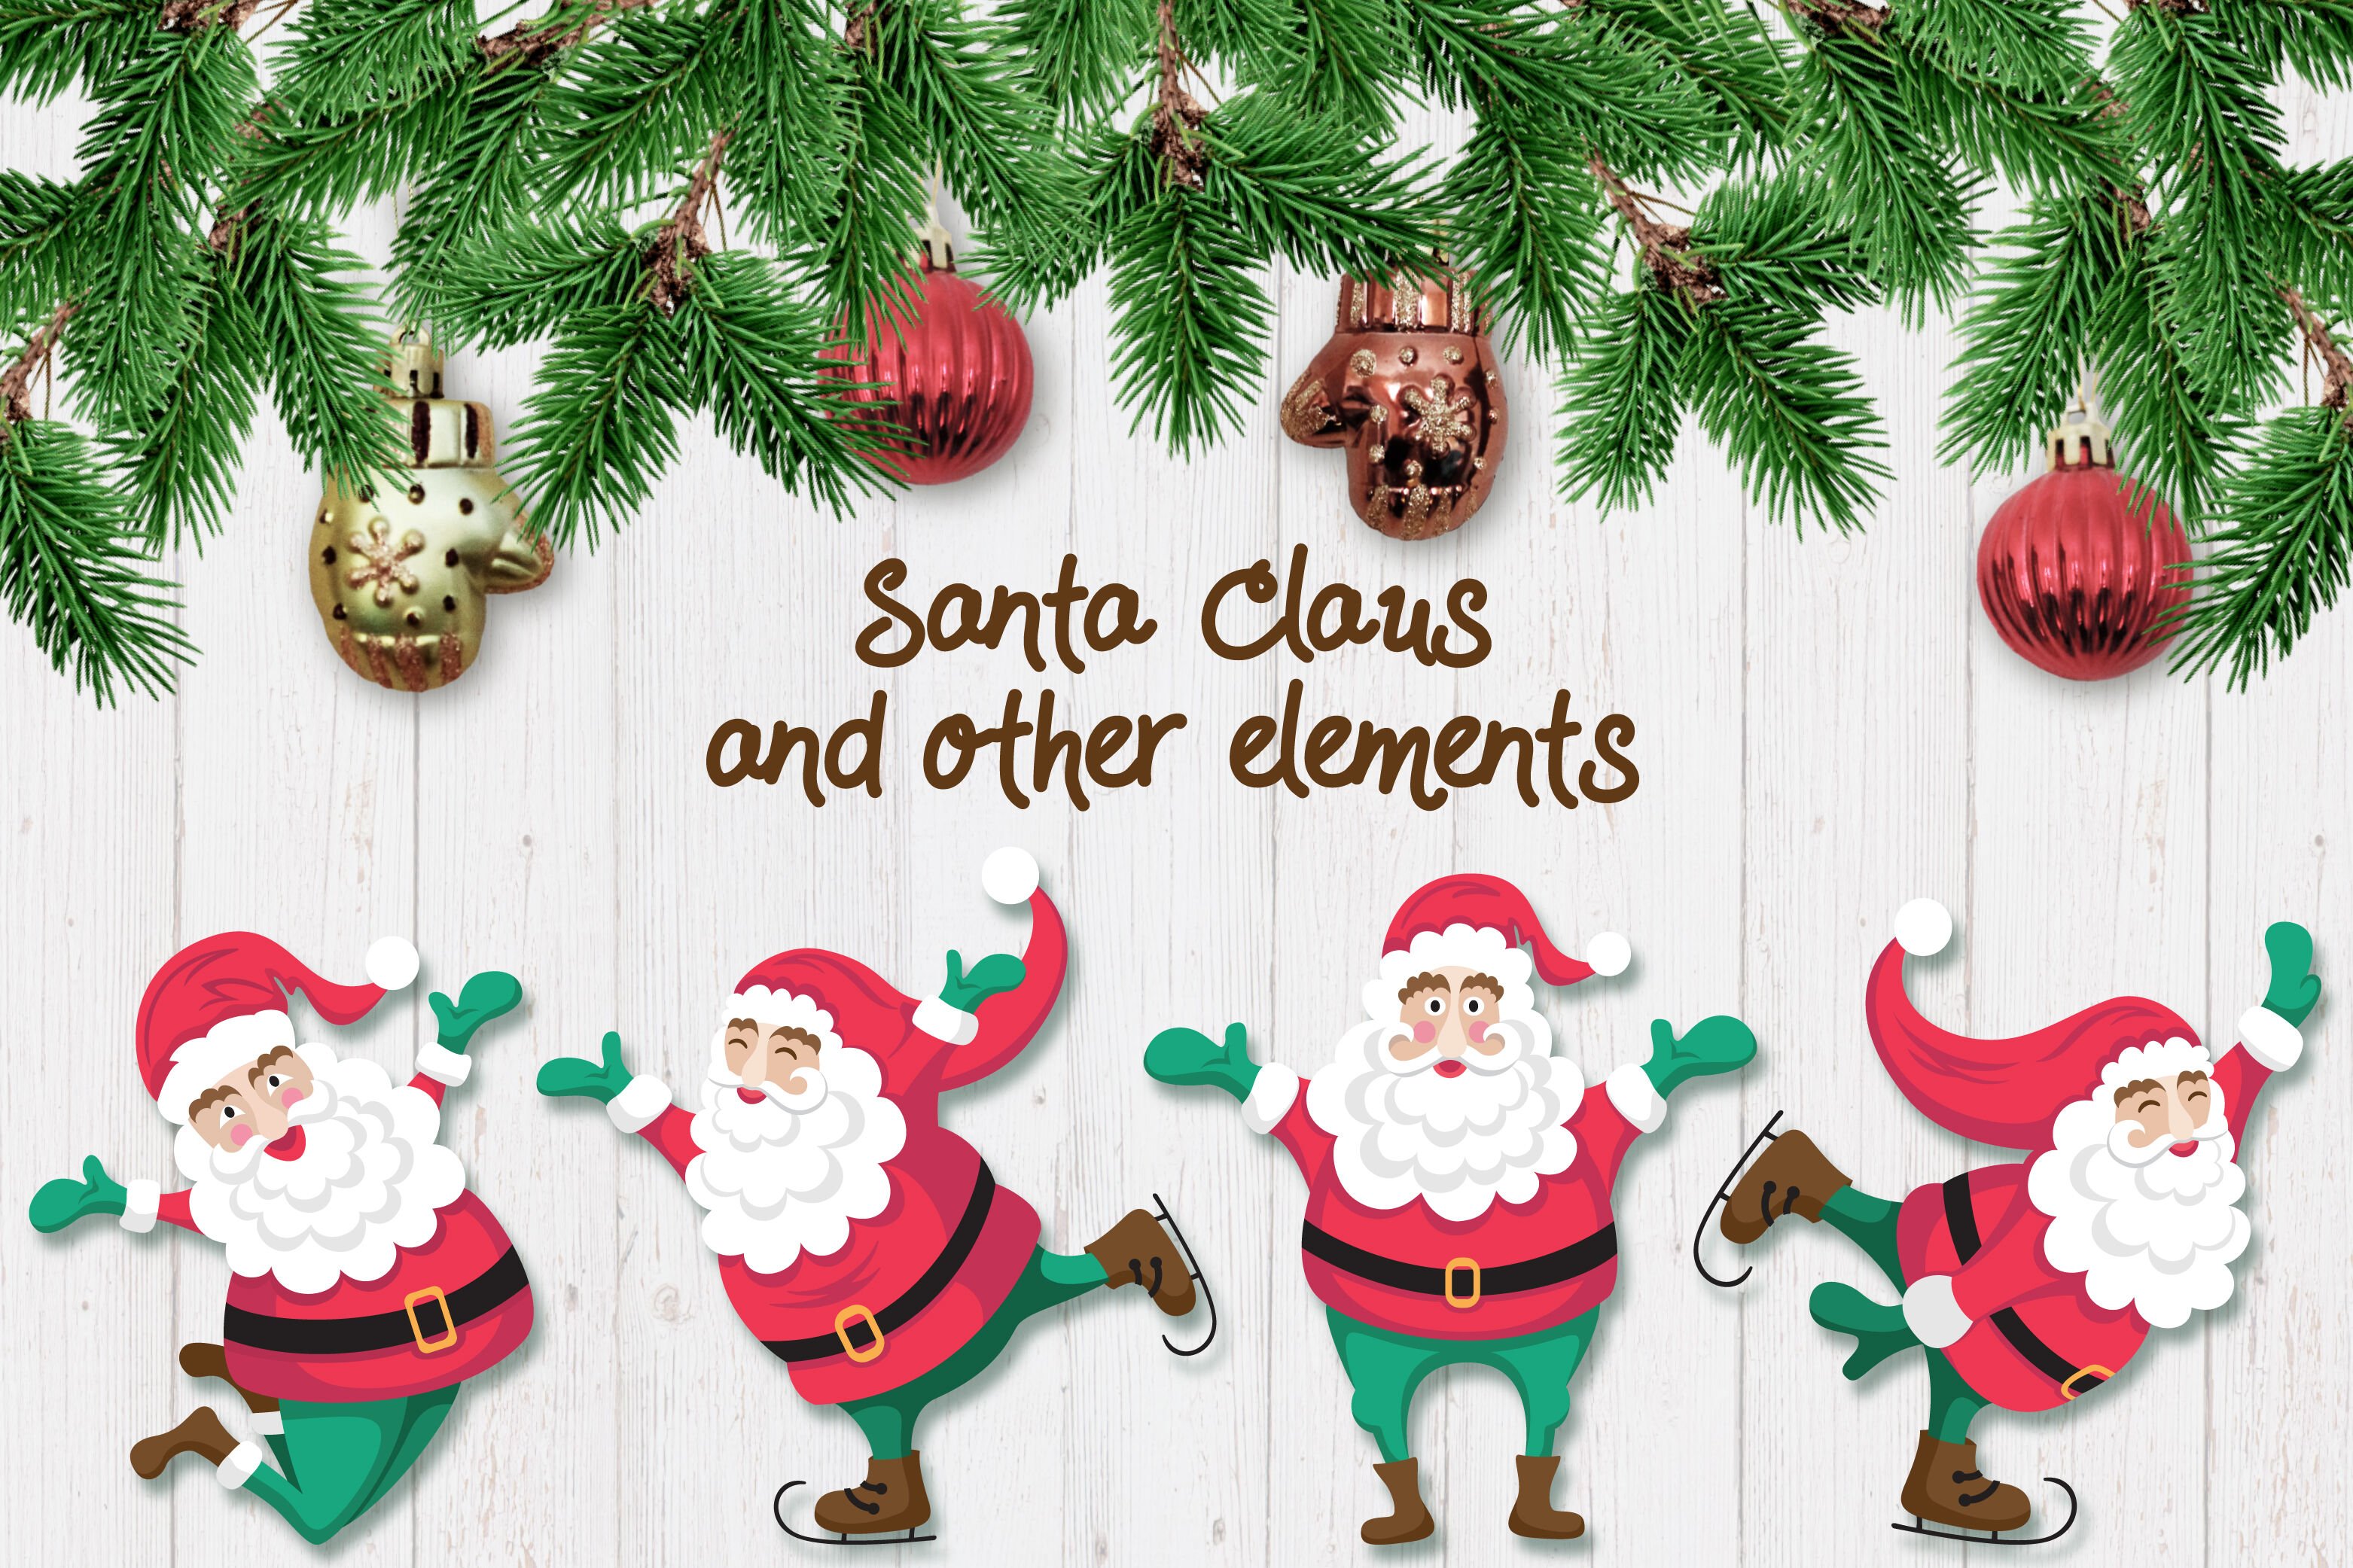 Merry Christmas Collection Images And Patterns By Godigigo